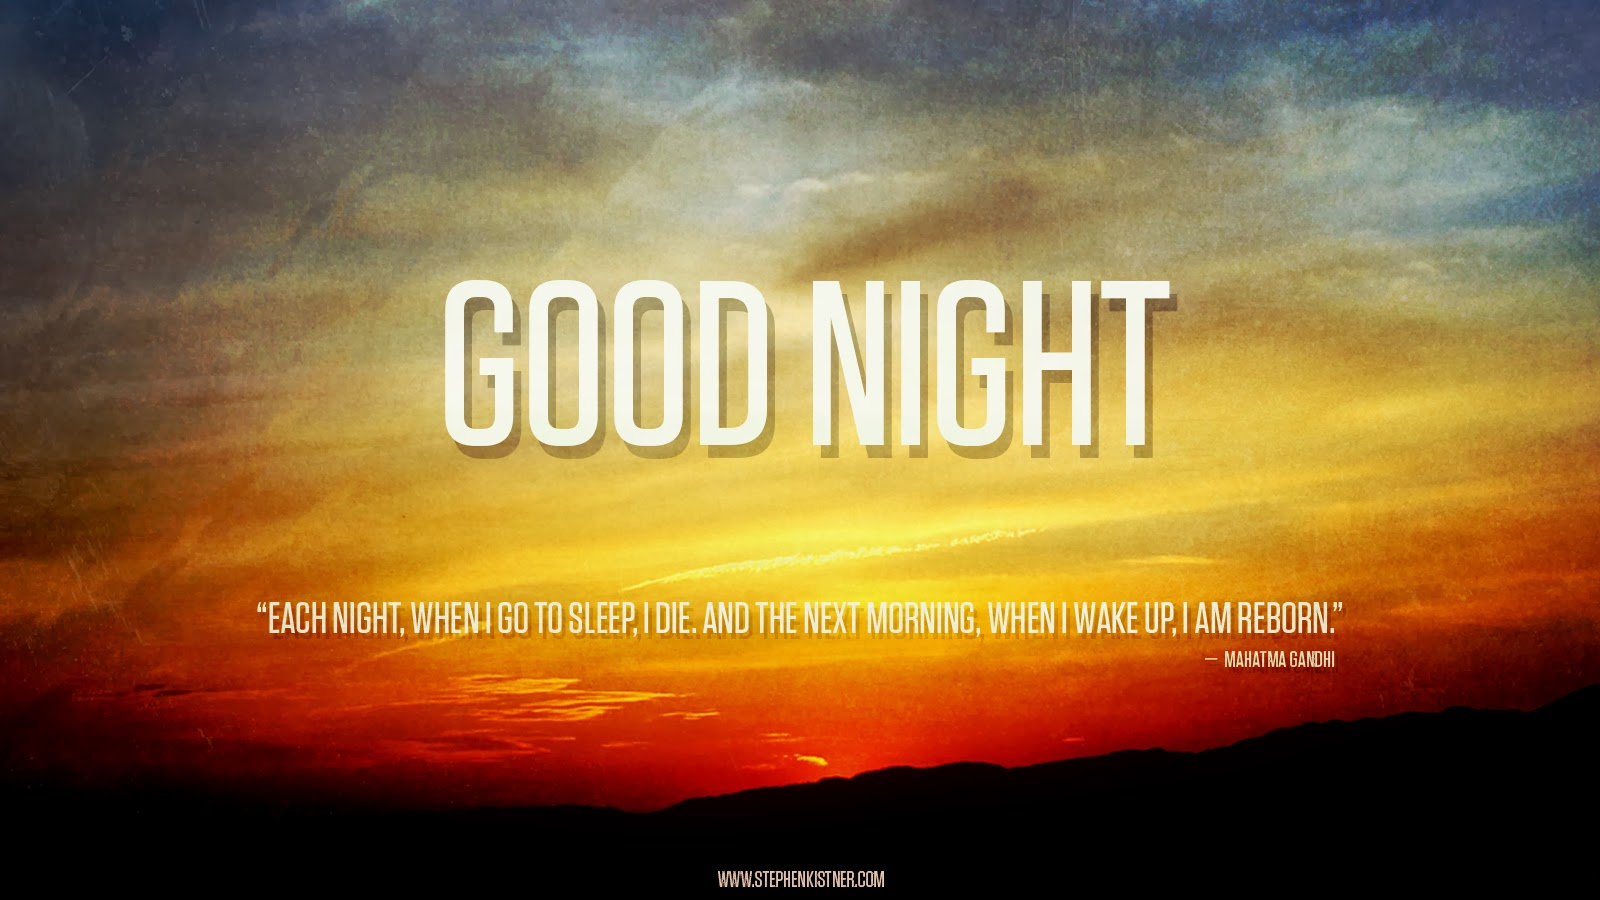 Good Night Sweet Dreams Wishes HD Wallpapers and Quotes Download Free ~ Super...